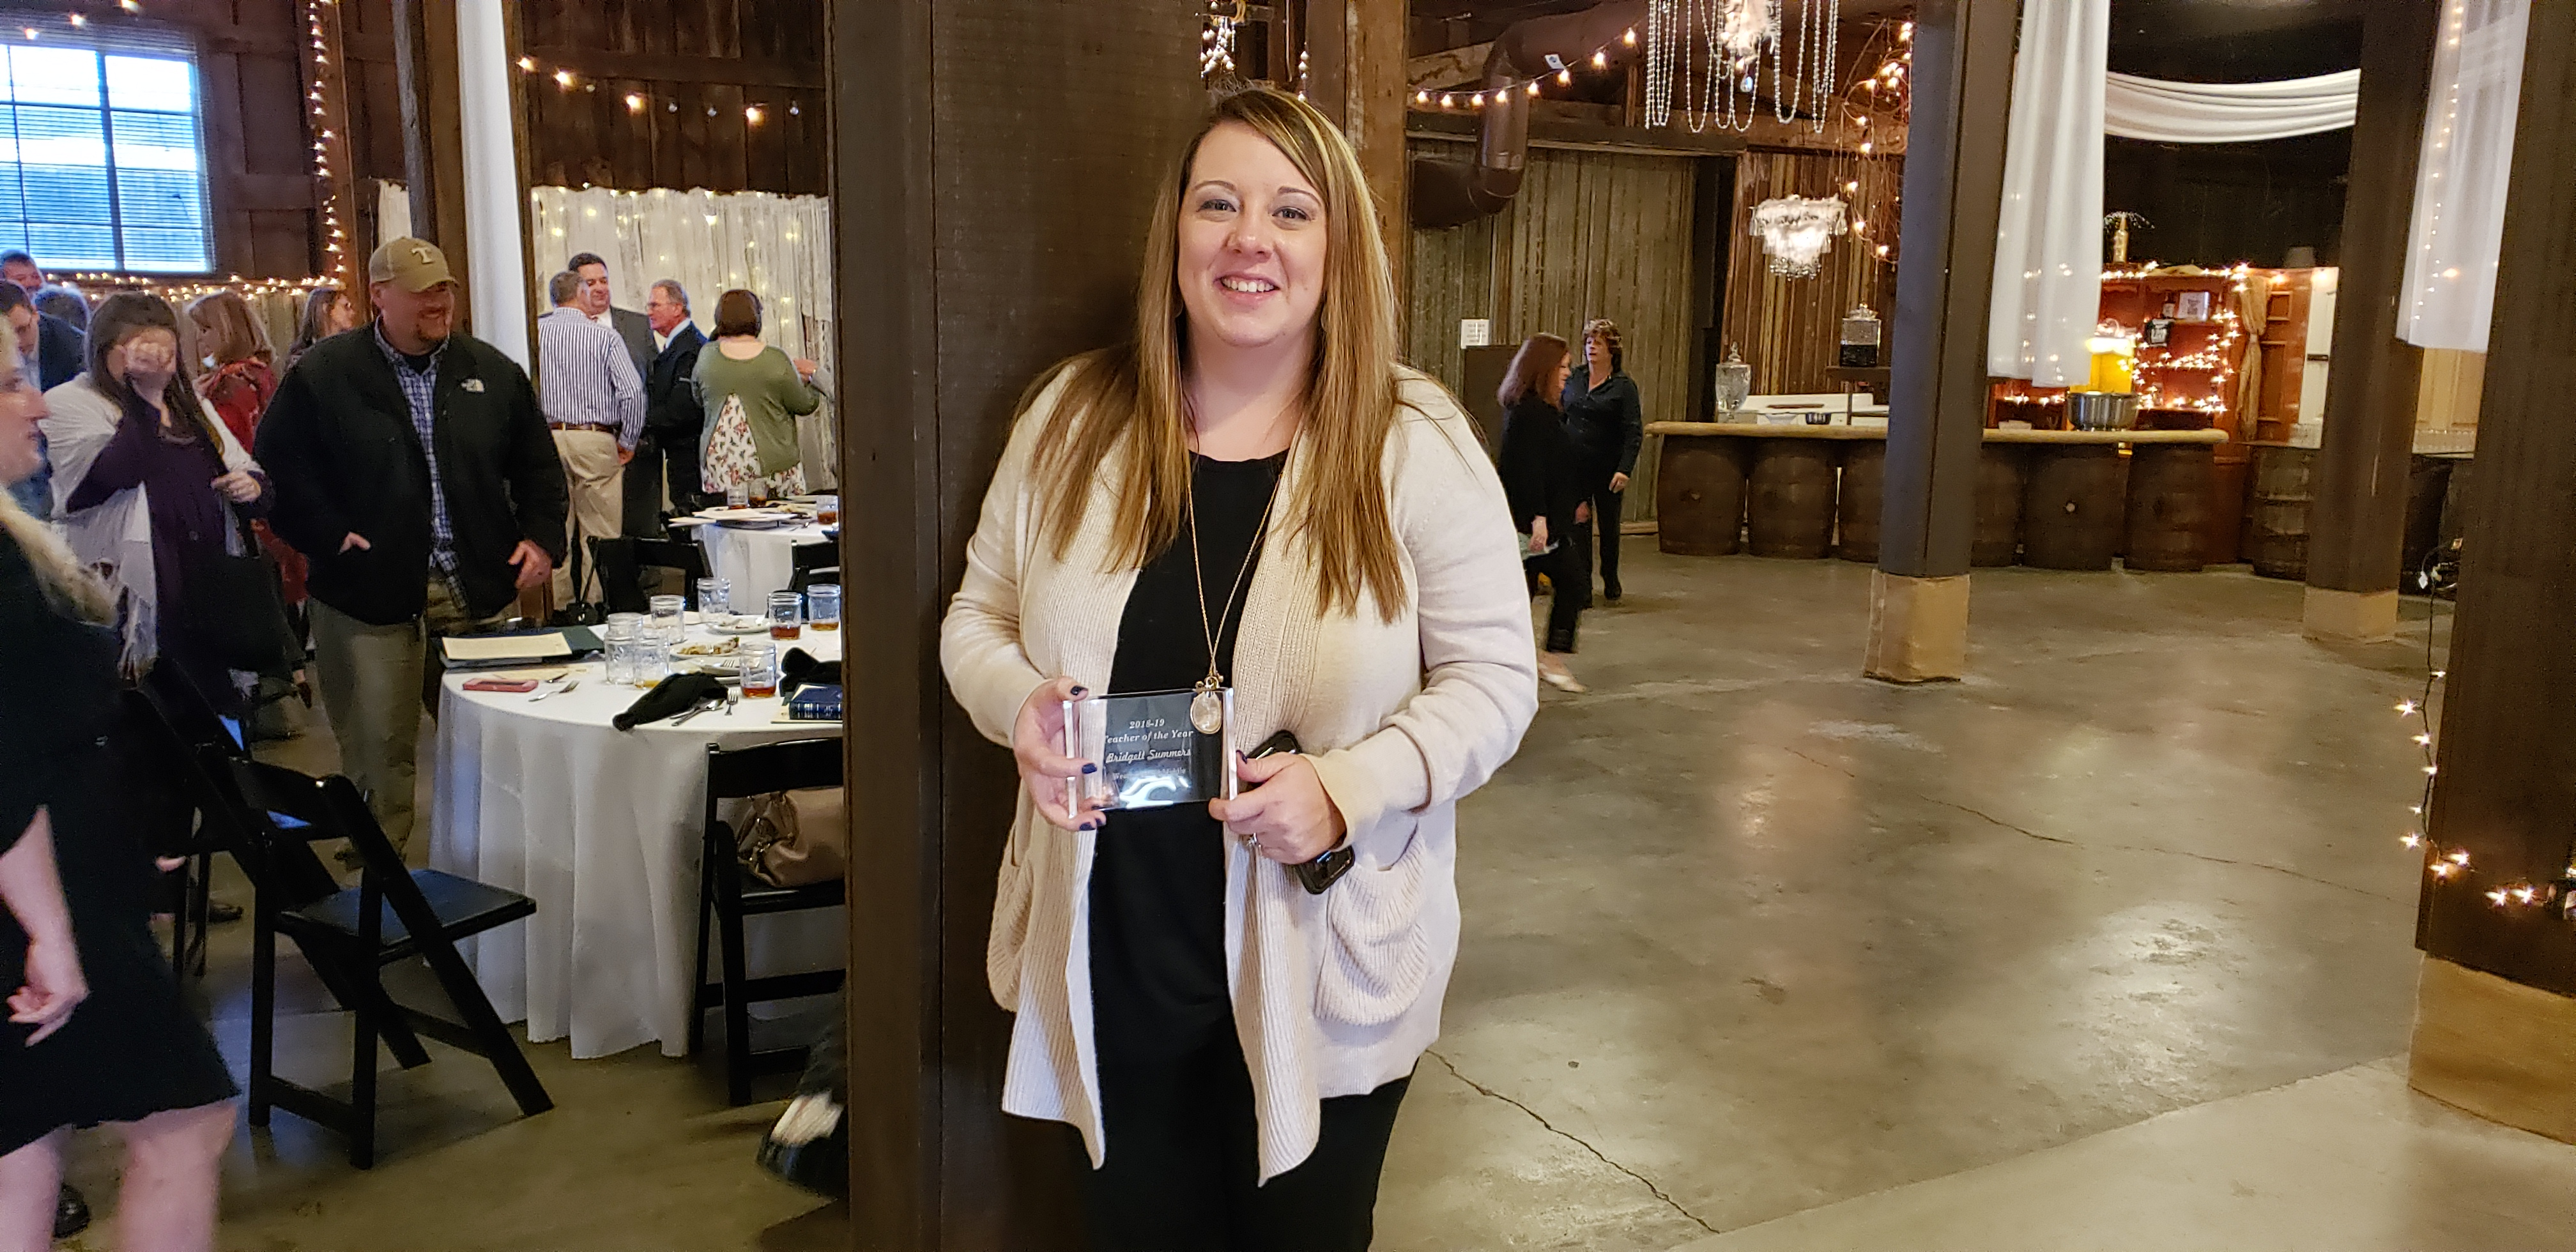 Mrs. Bridgett Summers ... is recognized as the Teacher of the Year for Westmoreland Middle School at the Teacher of the Luncheon held at the Epic Center in Gallatin.  (03/18)